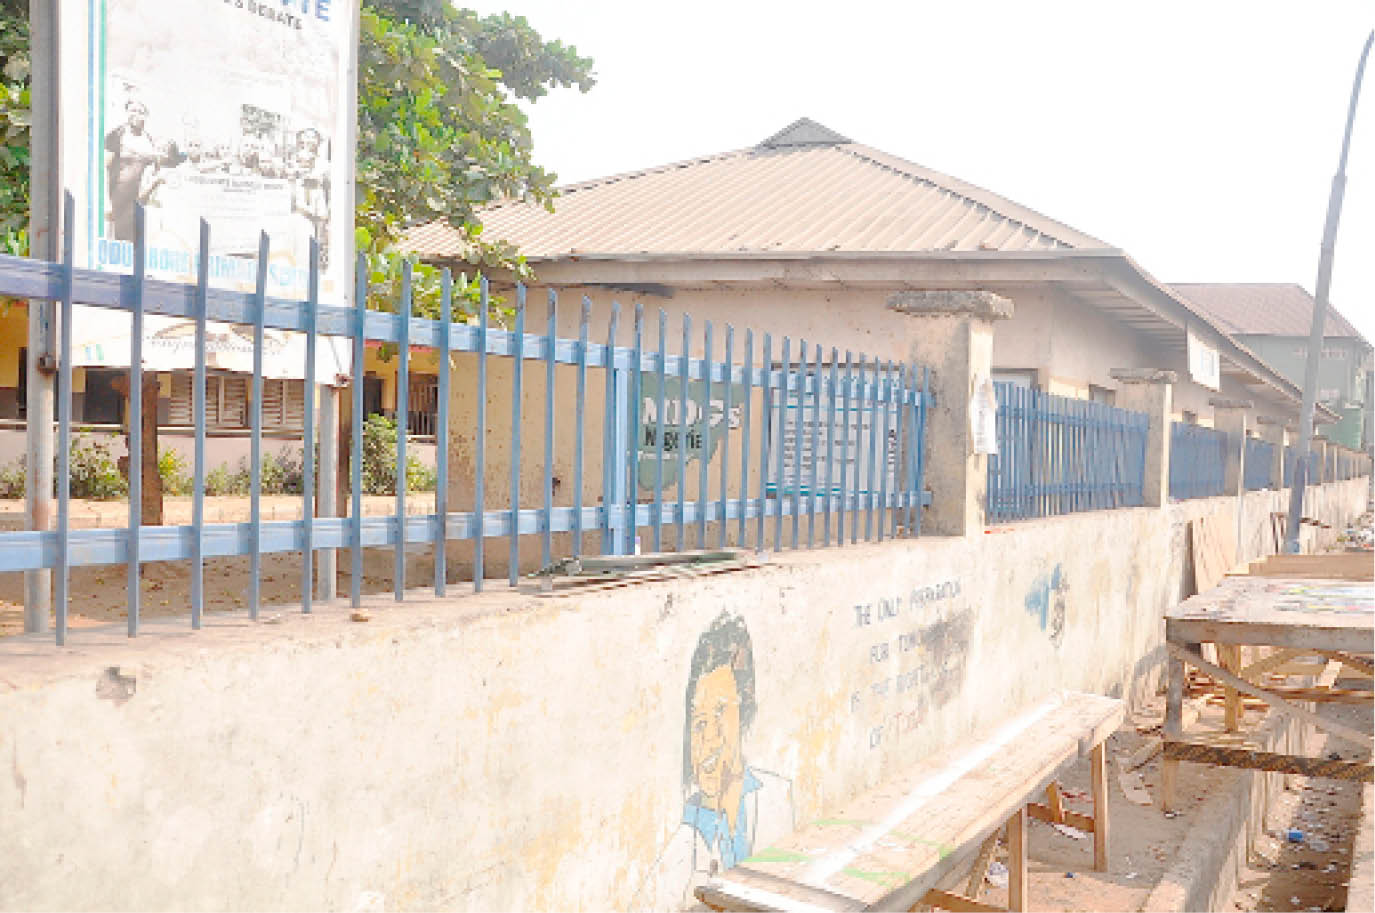 Odu Abore Primary School, Iyala street, Mushin built by the former governor of Lagos State, Alhaji Lateef Jakande